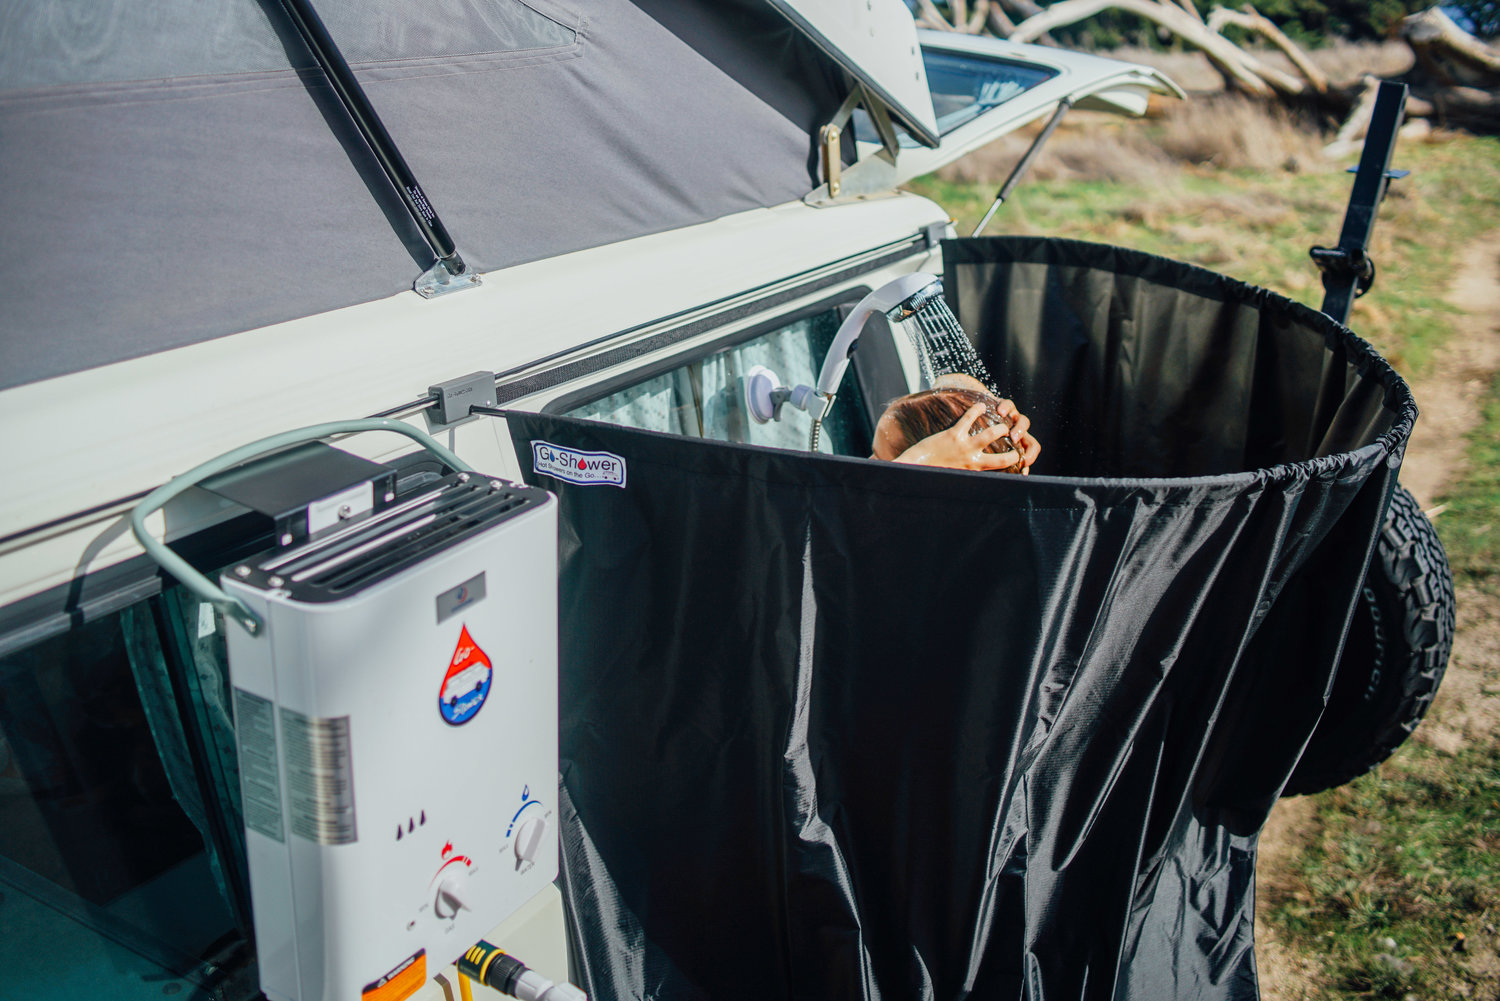 The First Ever Rain Gutter Mounted Shower Curtain For Your VW Westfalia Campervan